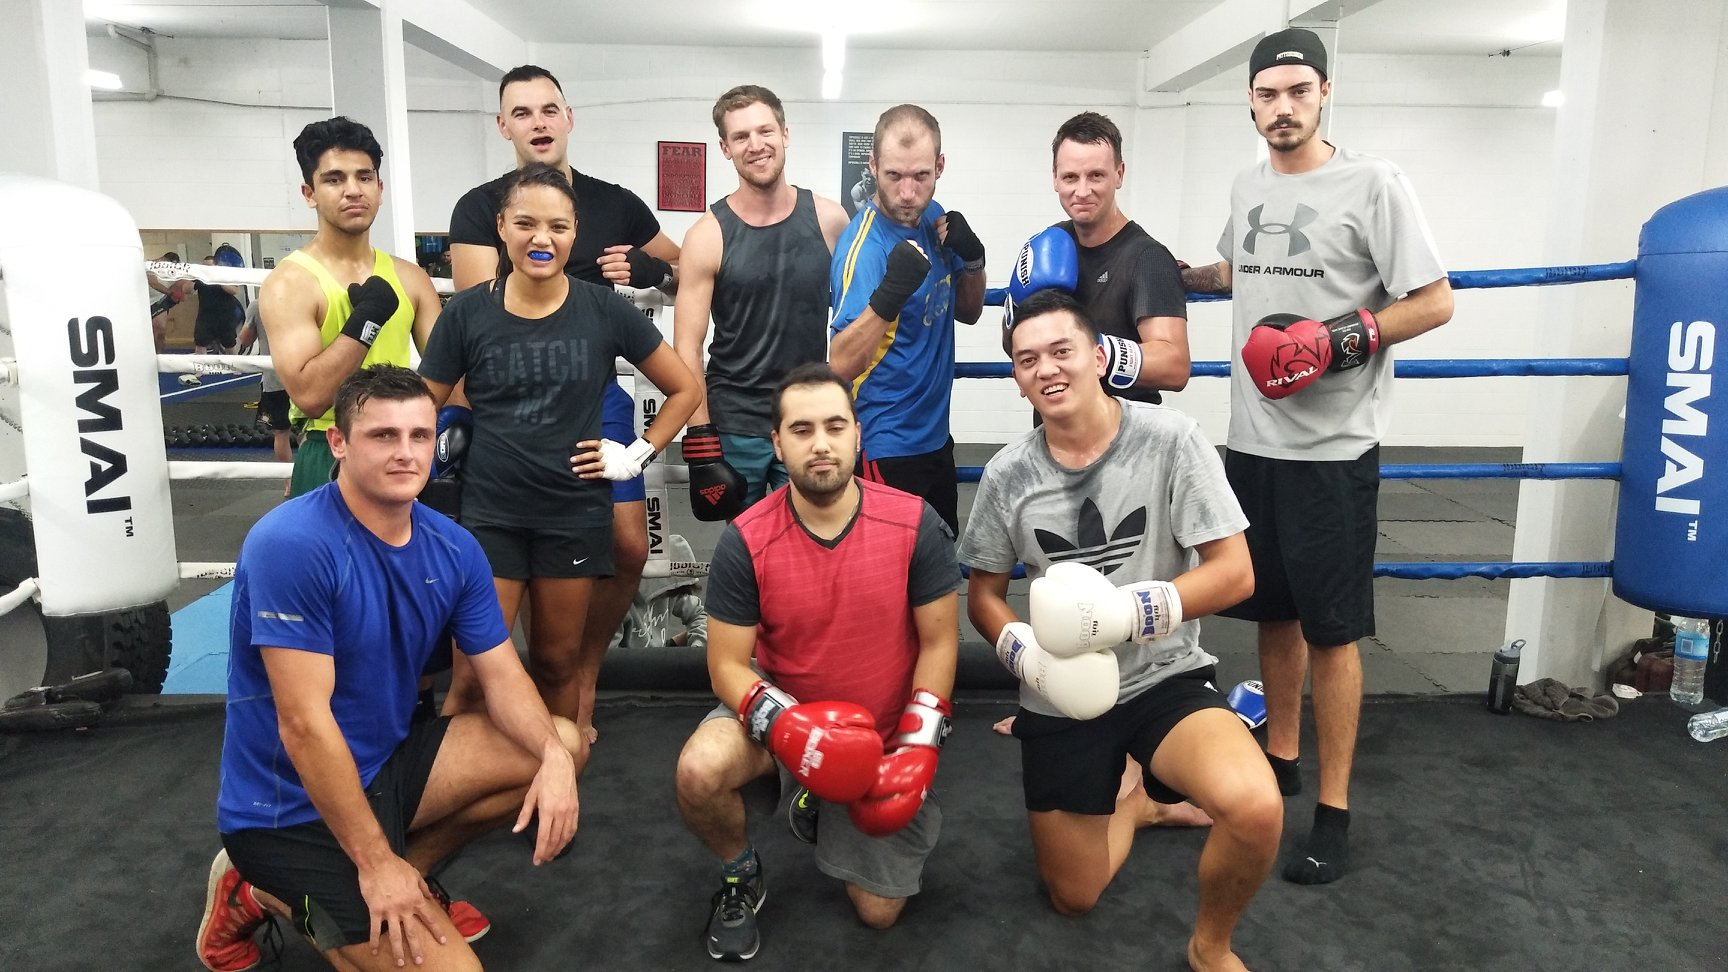 beginners boxing training program auckland new zealand